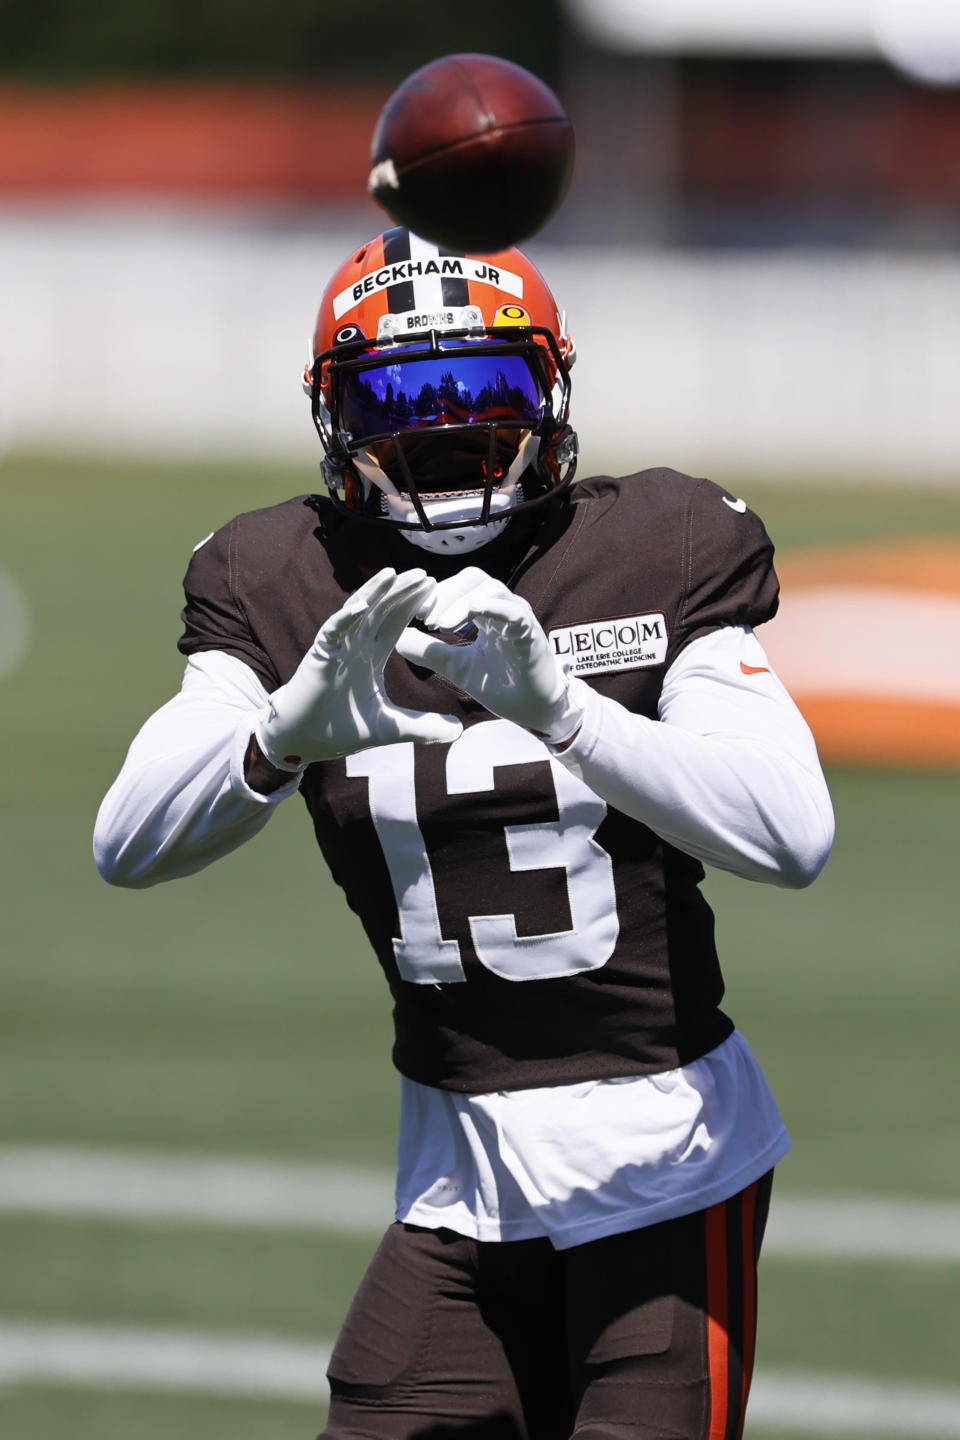 Cleveland Browns wide receiver Odell Beckham Jr. catches a pass during practice at the NFL football team's training facility Wednesday, Aug. 19, 2020, in Berea, Ohio. (AP Photo/Ron Schwane)